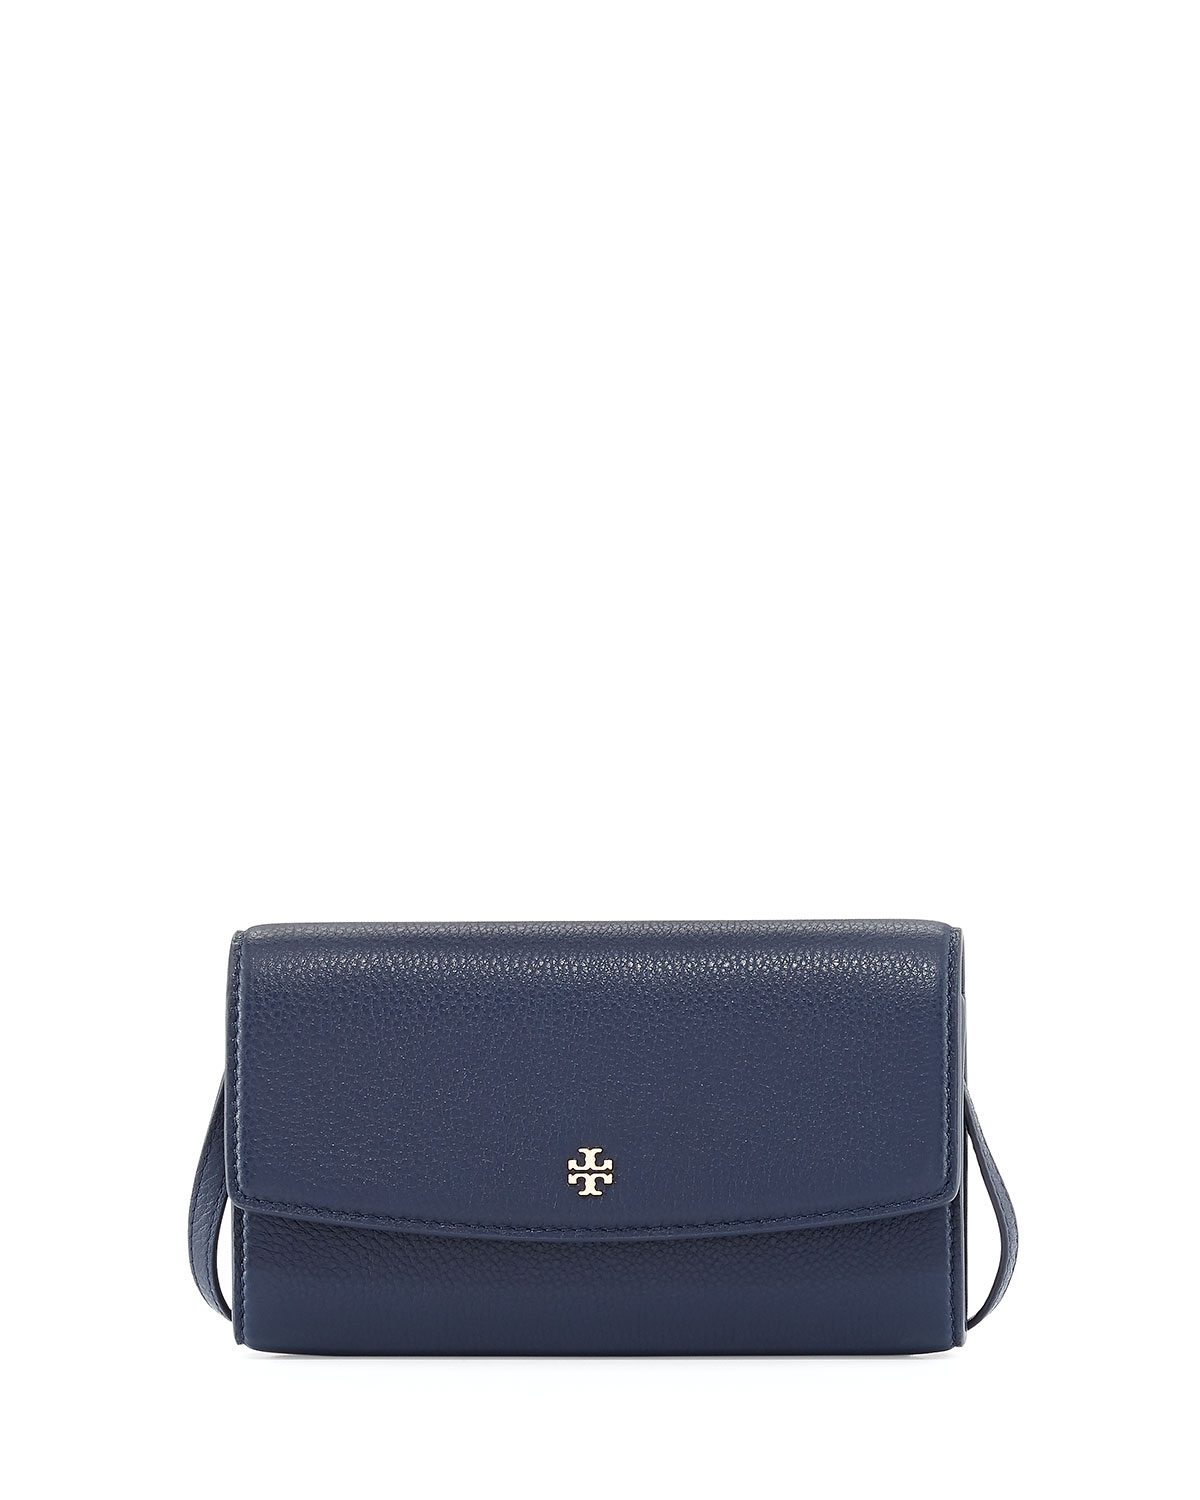 c8a32b8e550 Tory Burch Robinson Pebbled Leather Wallet on Crossbody Strap ...